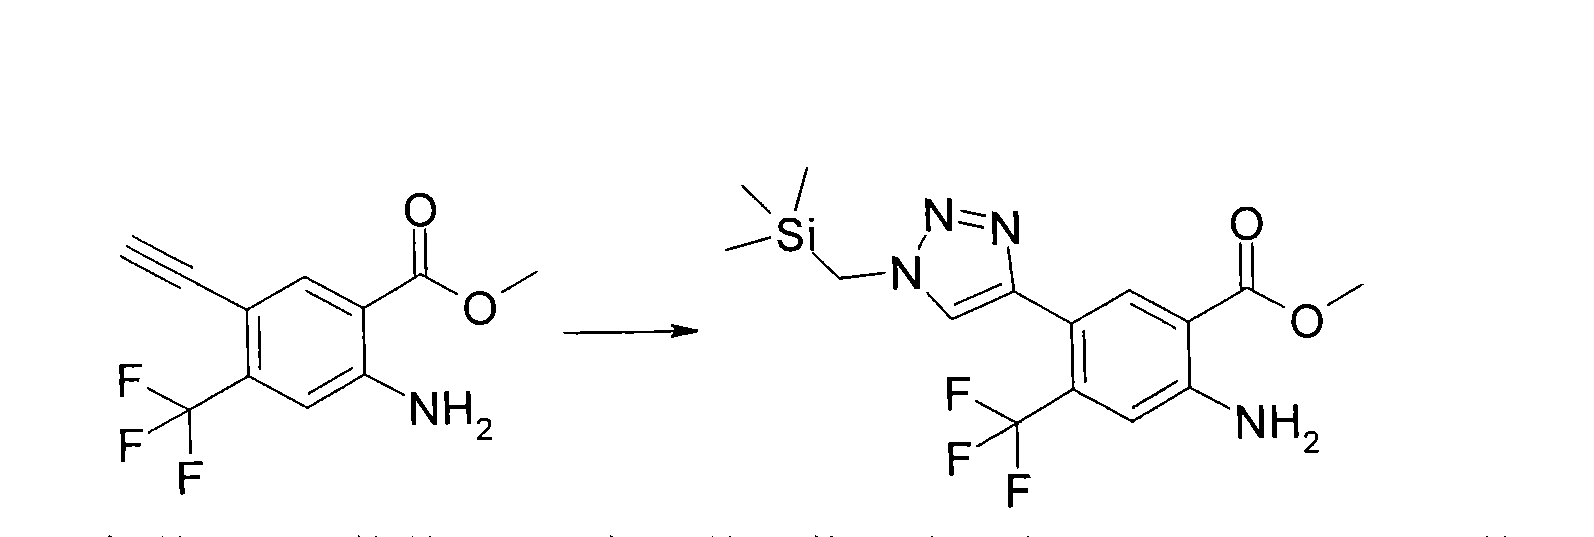 cn101155789b 1h quinaz0line 2,4 diones and their use as ampa